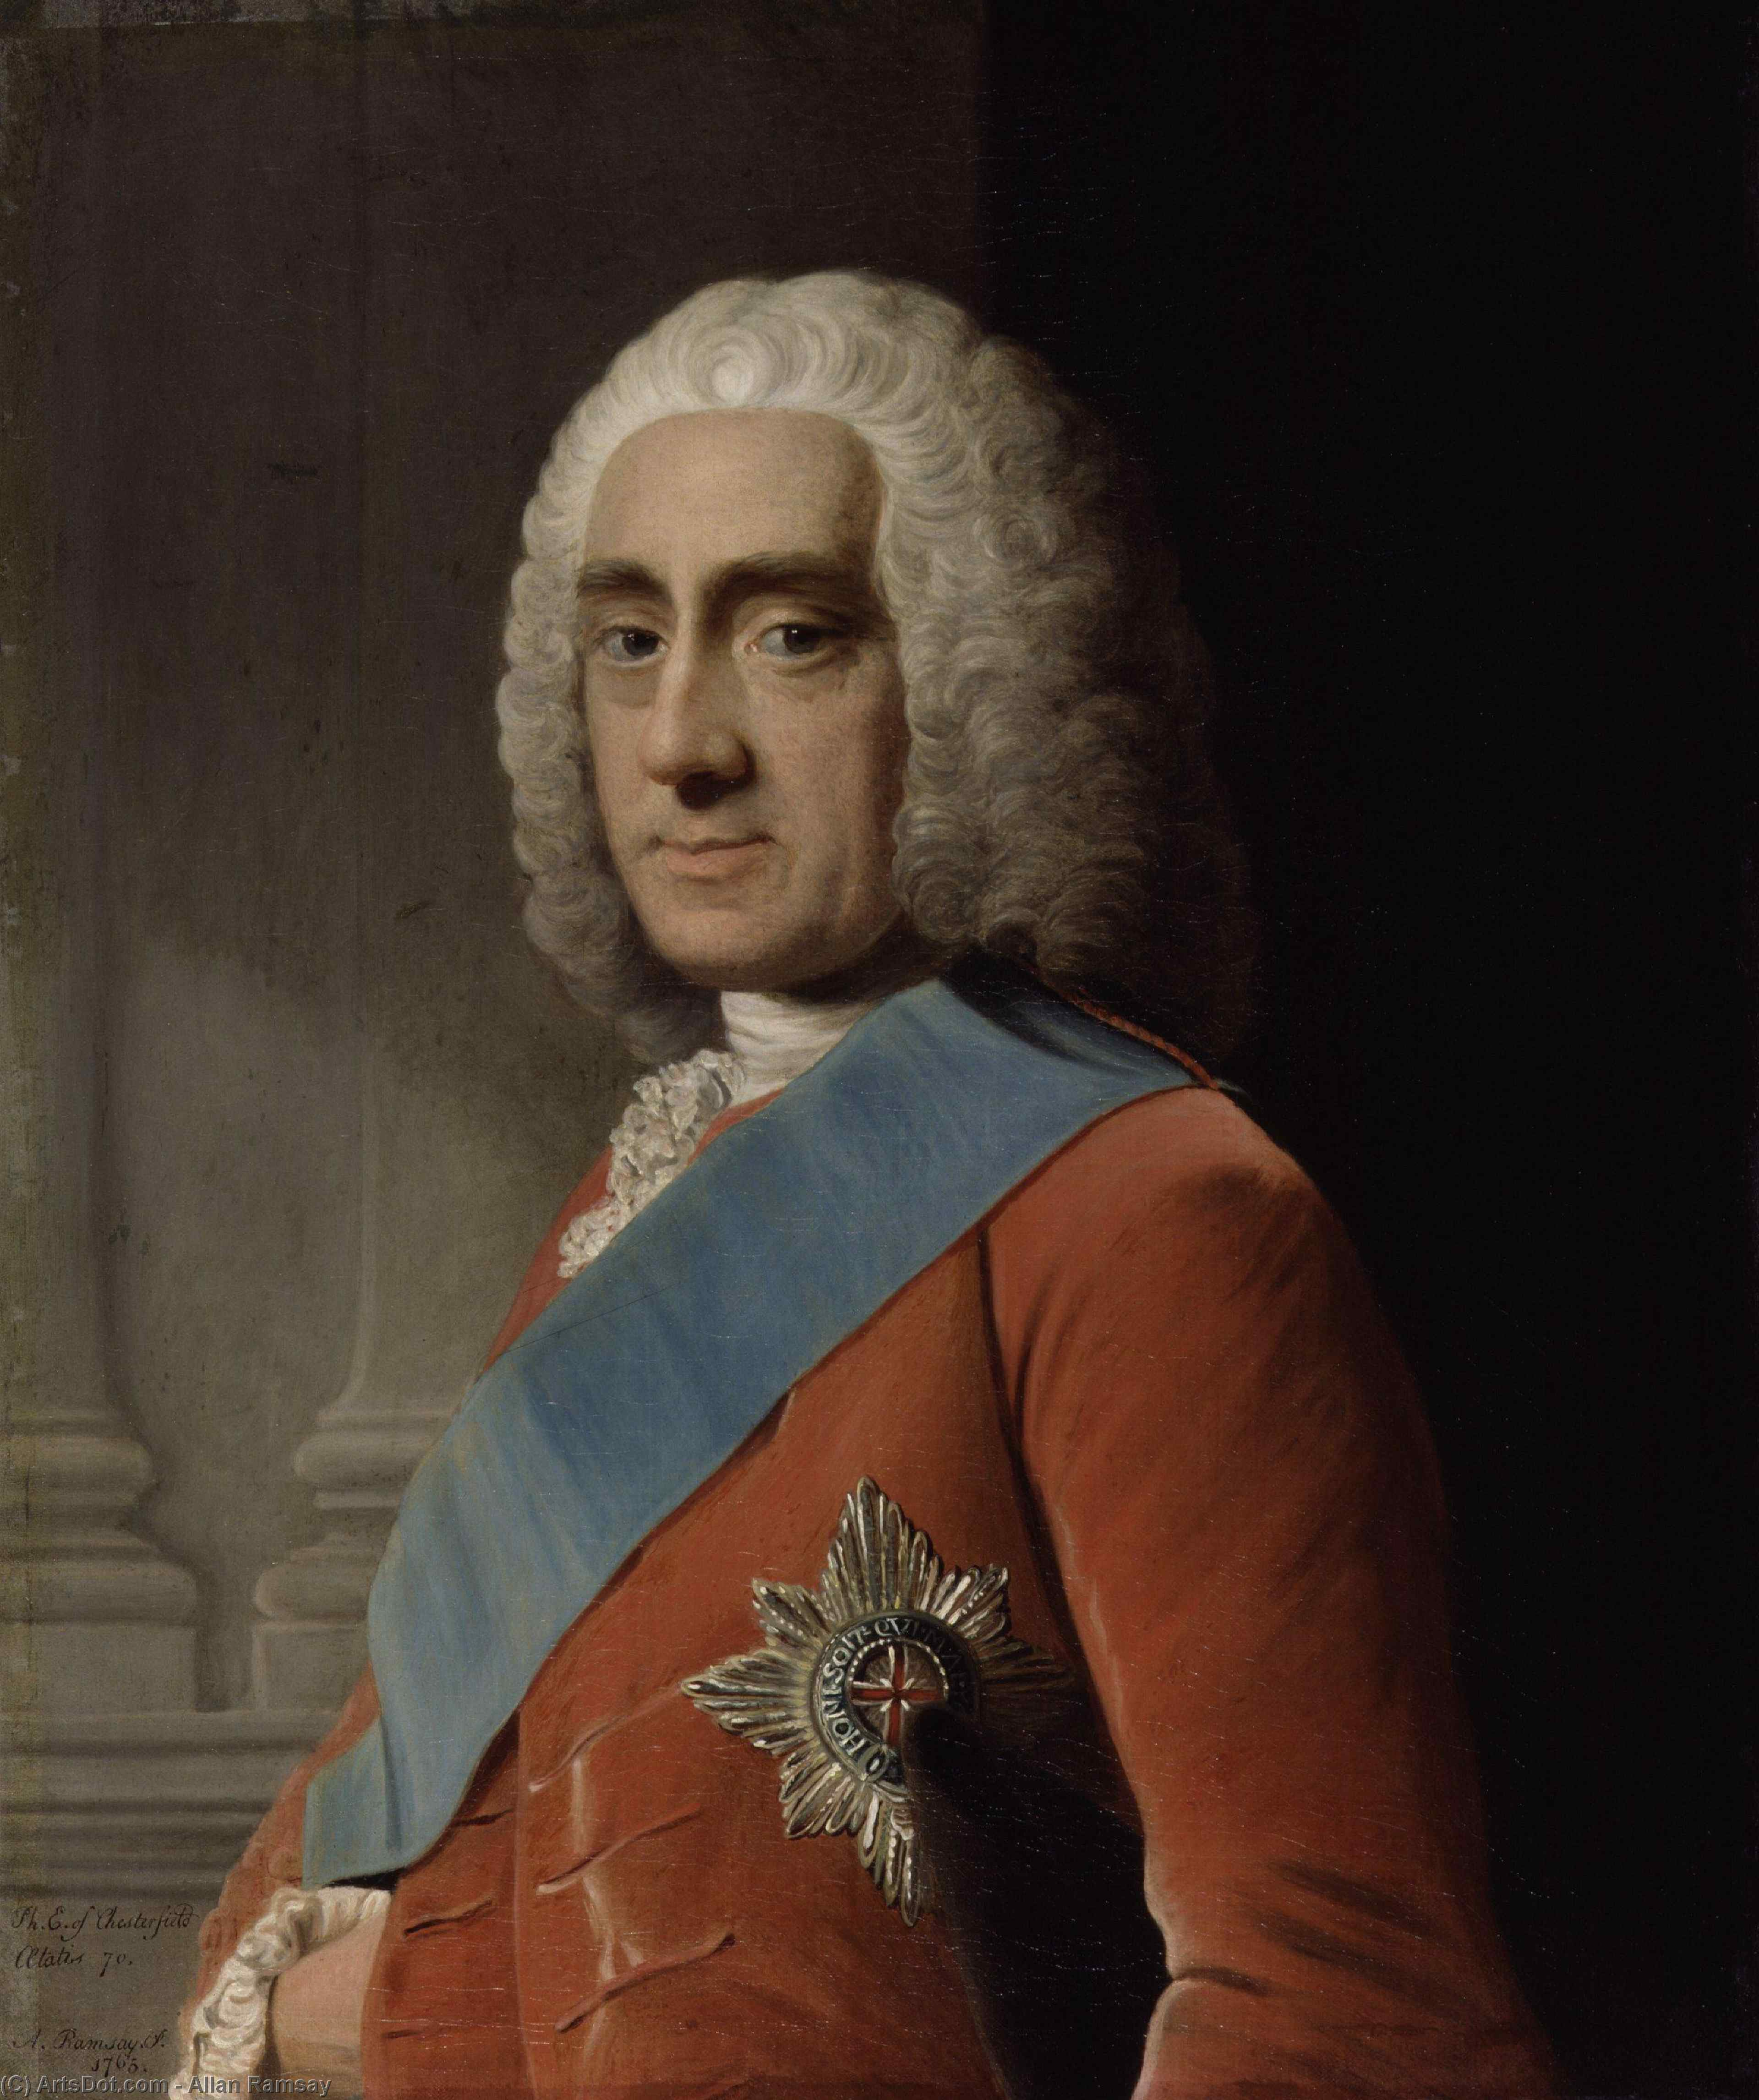 Wikioo.org - The Encyclopedia of Fine Arts - Painting, Artwork by Allan Ramsay - Philip Dormer Stanhope, 4th Earl of Chesterfield